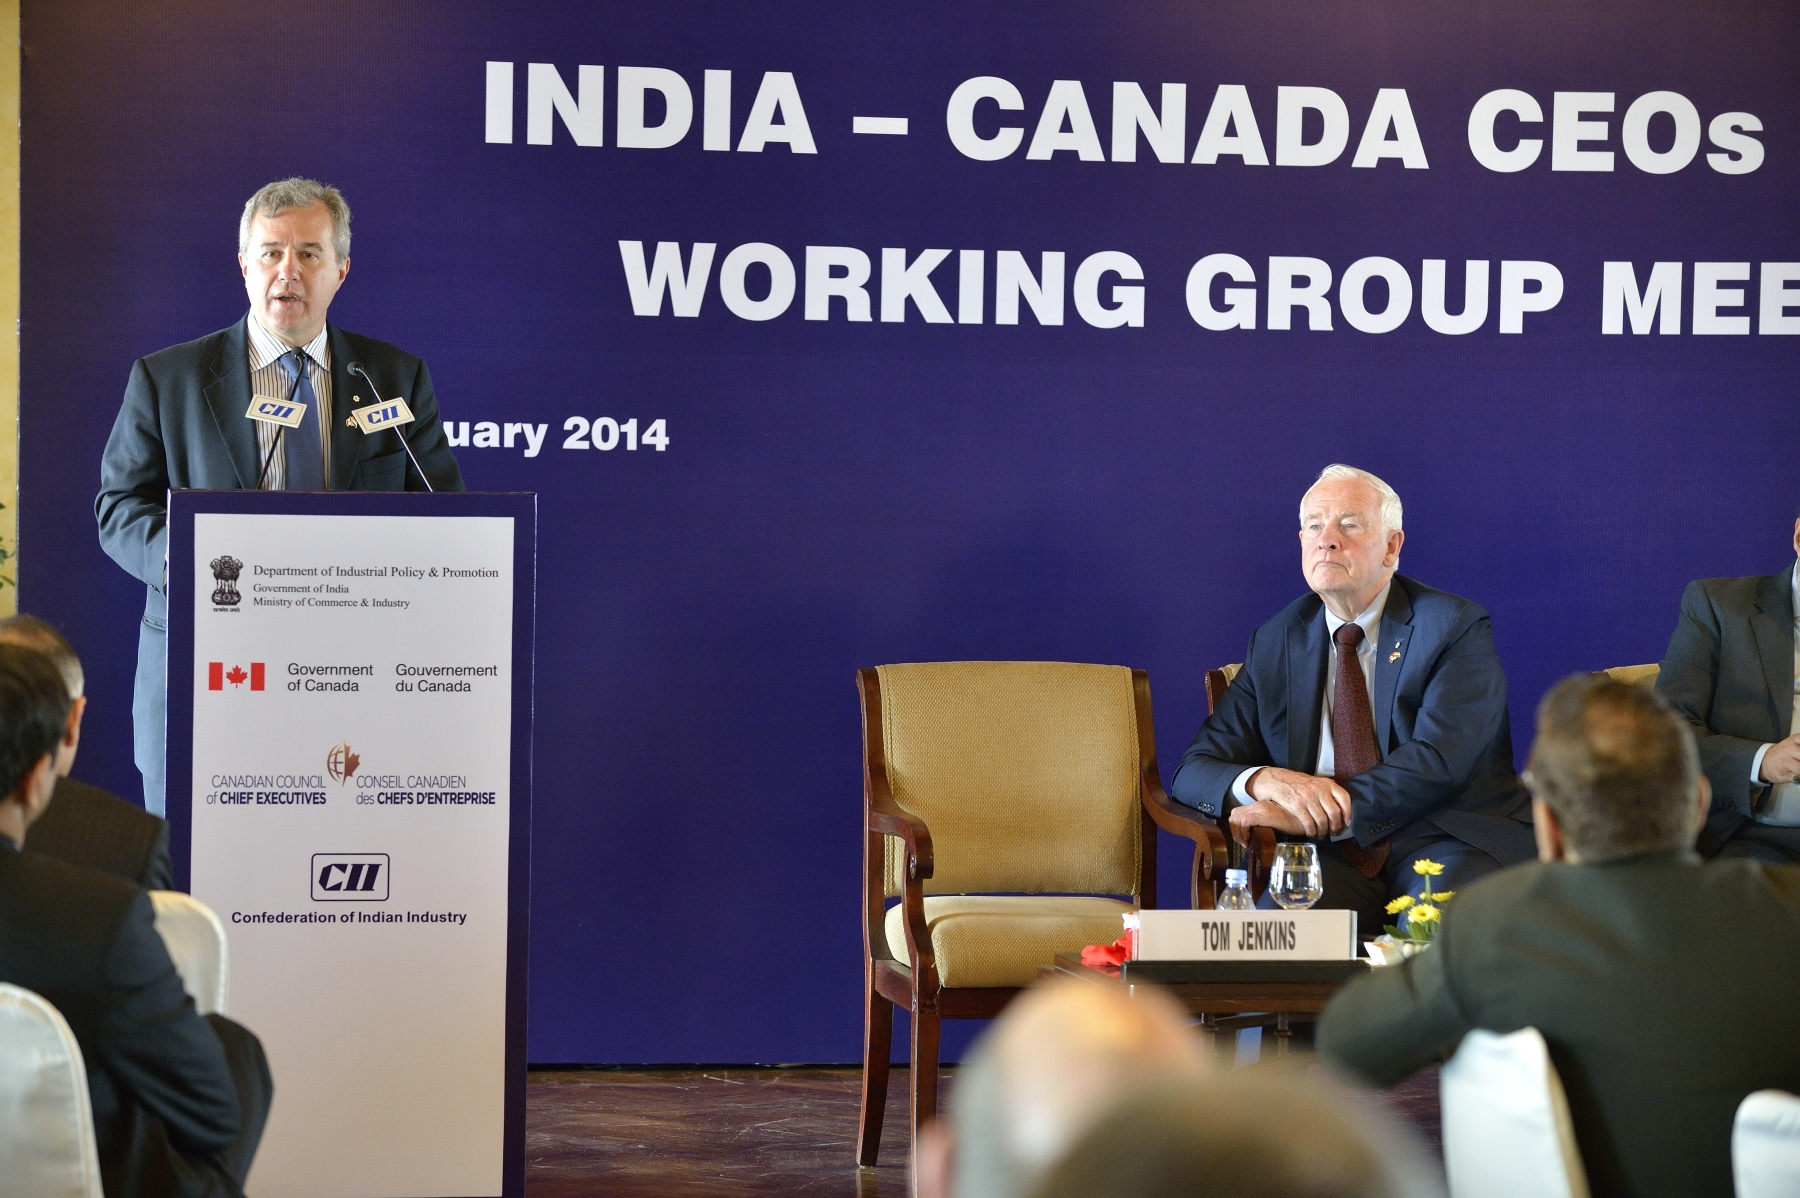 This event was followed by the Canada-India CEO Forum, which brought together senior Canadian and Indian executives to capitalize on opportunities for trade, investment and innovation partnerships, and to address related challenges. On this occasion, the Canada-India CEO Forum co-chairs Tom Jenkins, Chairman of OpenText (pictured, left), and Hari S. Bhartia, Co-Chairman and Founder of Jubilant Bhartia Group, presented a report to the Governor General and the Honourable Anand Sharma, Minister of Commerce and Industry.